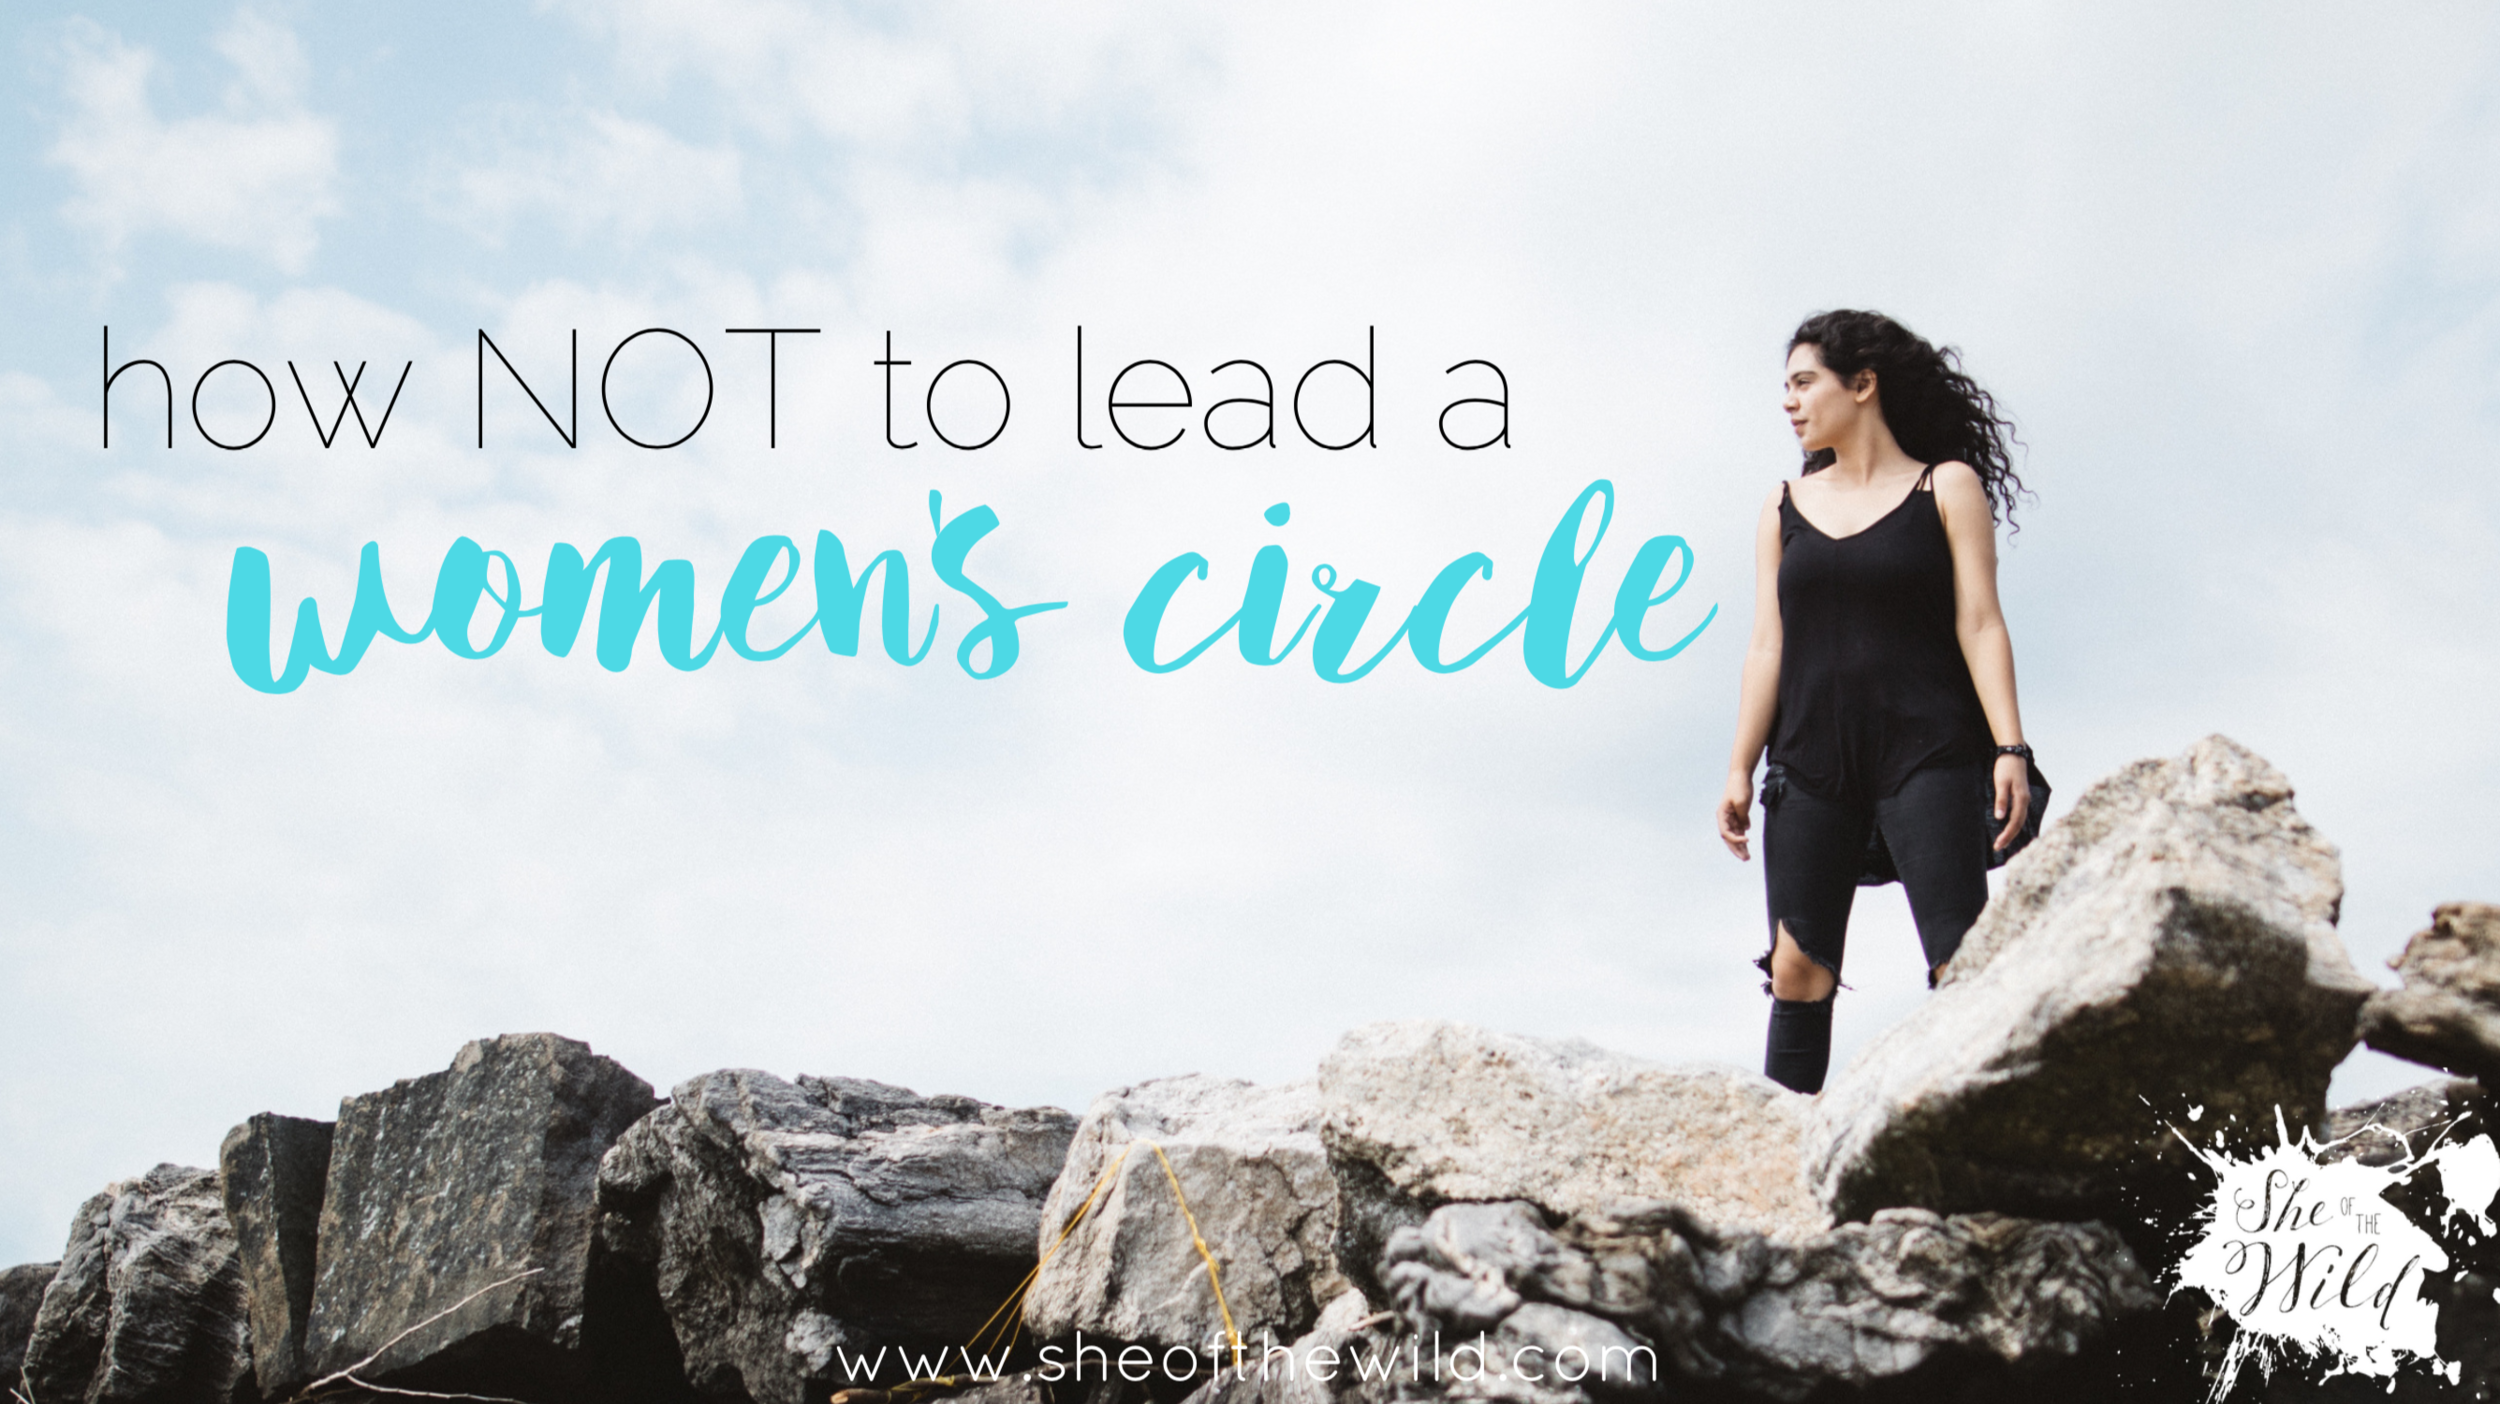 how not to lead a women's circle